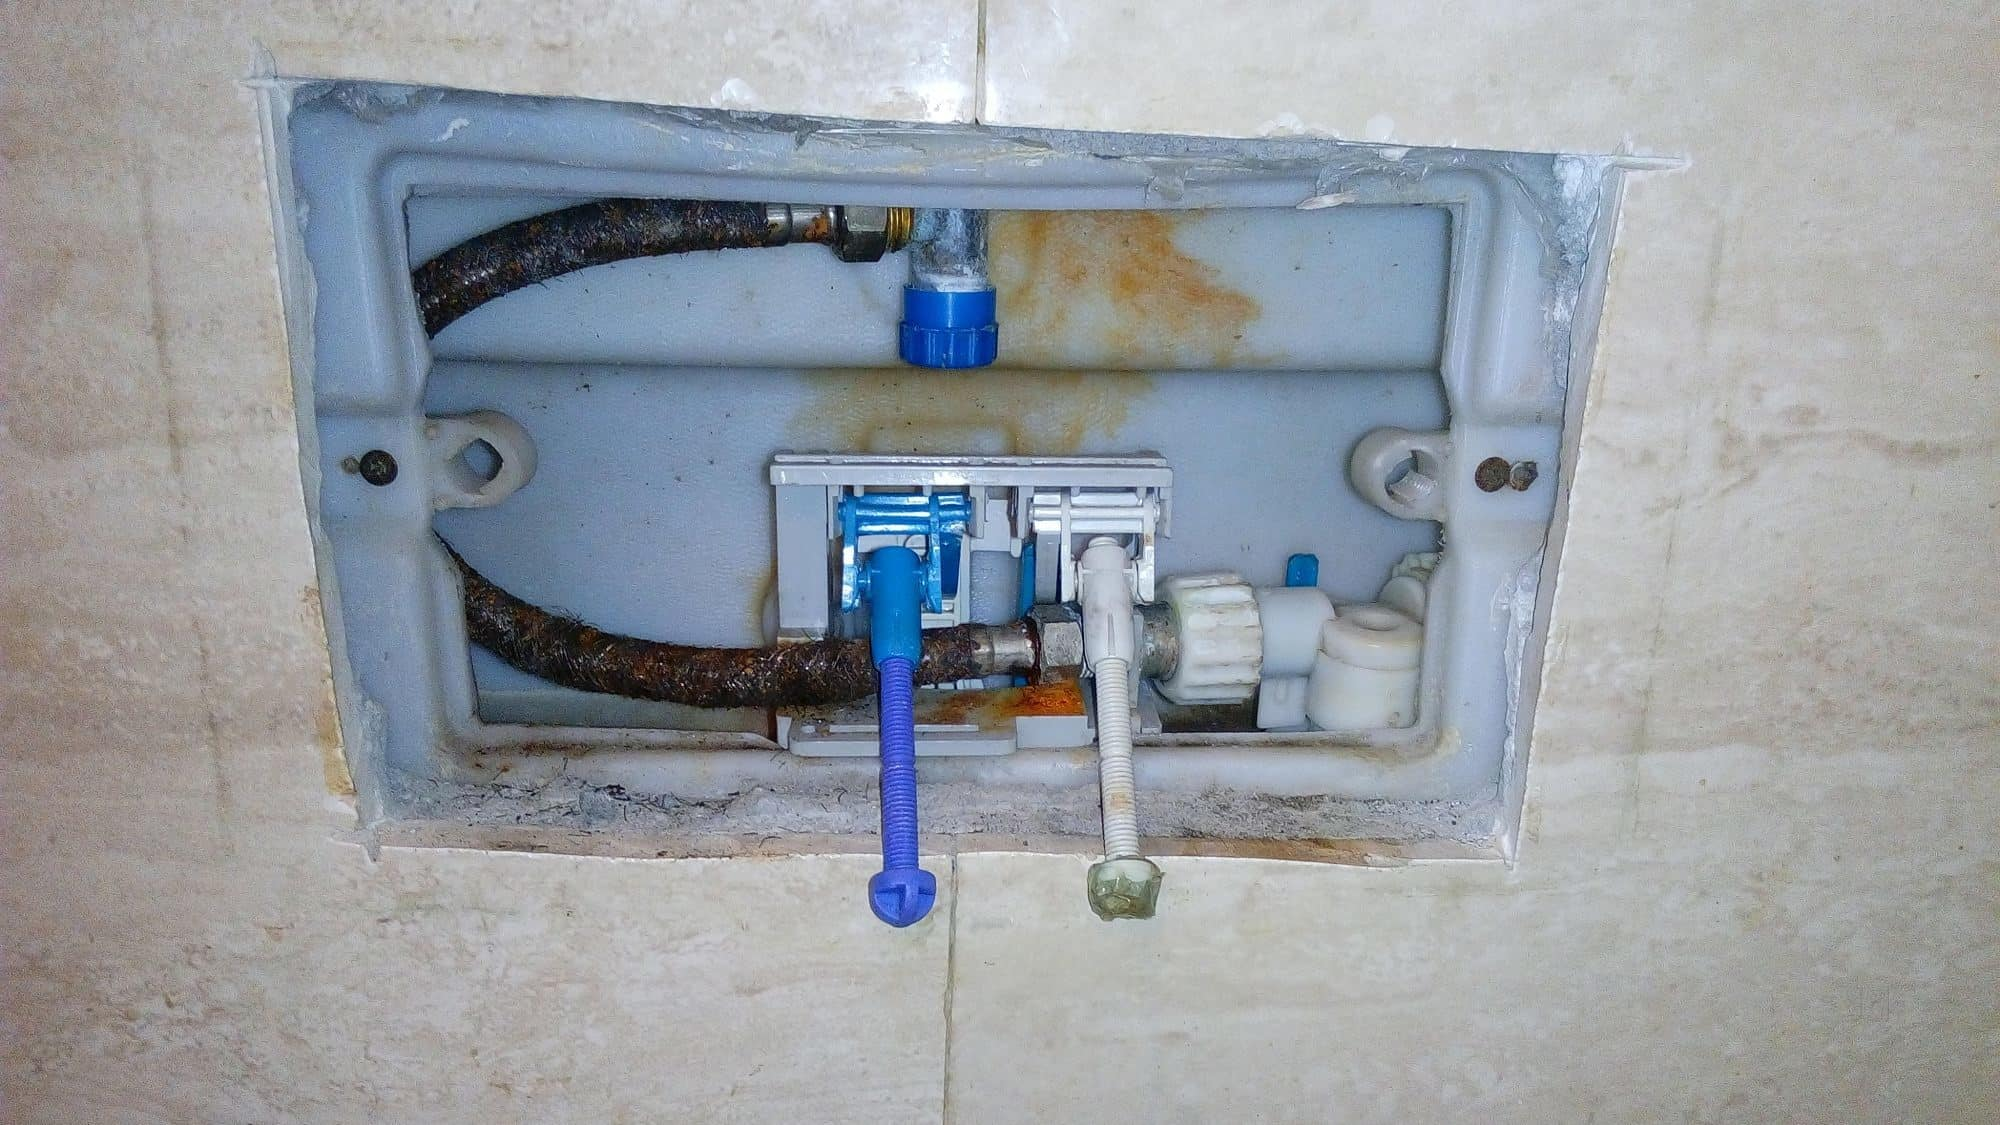 Bath Solutions Photos, Patel Nagar 3, Ghaziabad- Pictures & Images ...